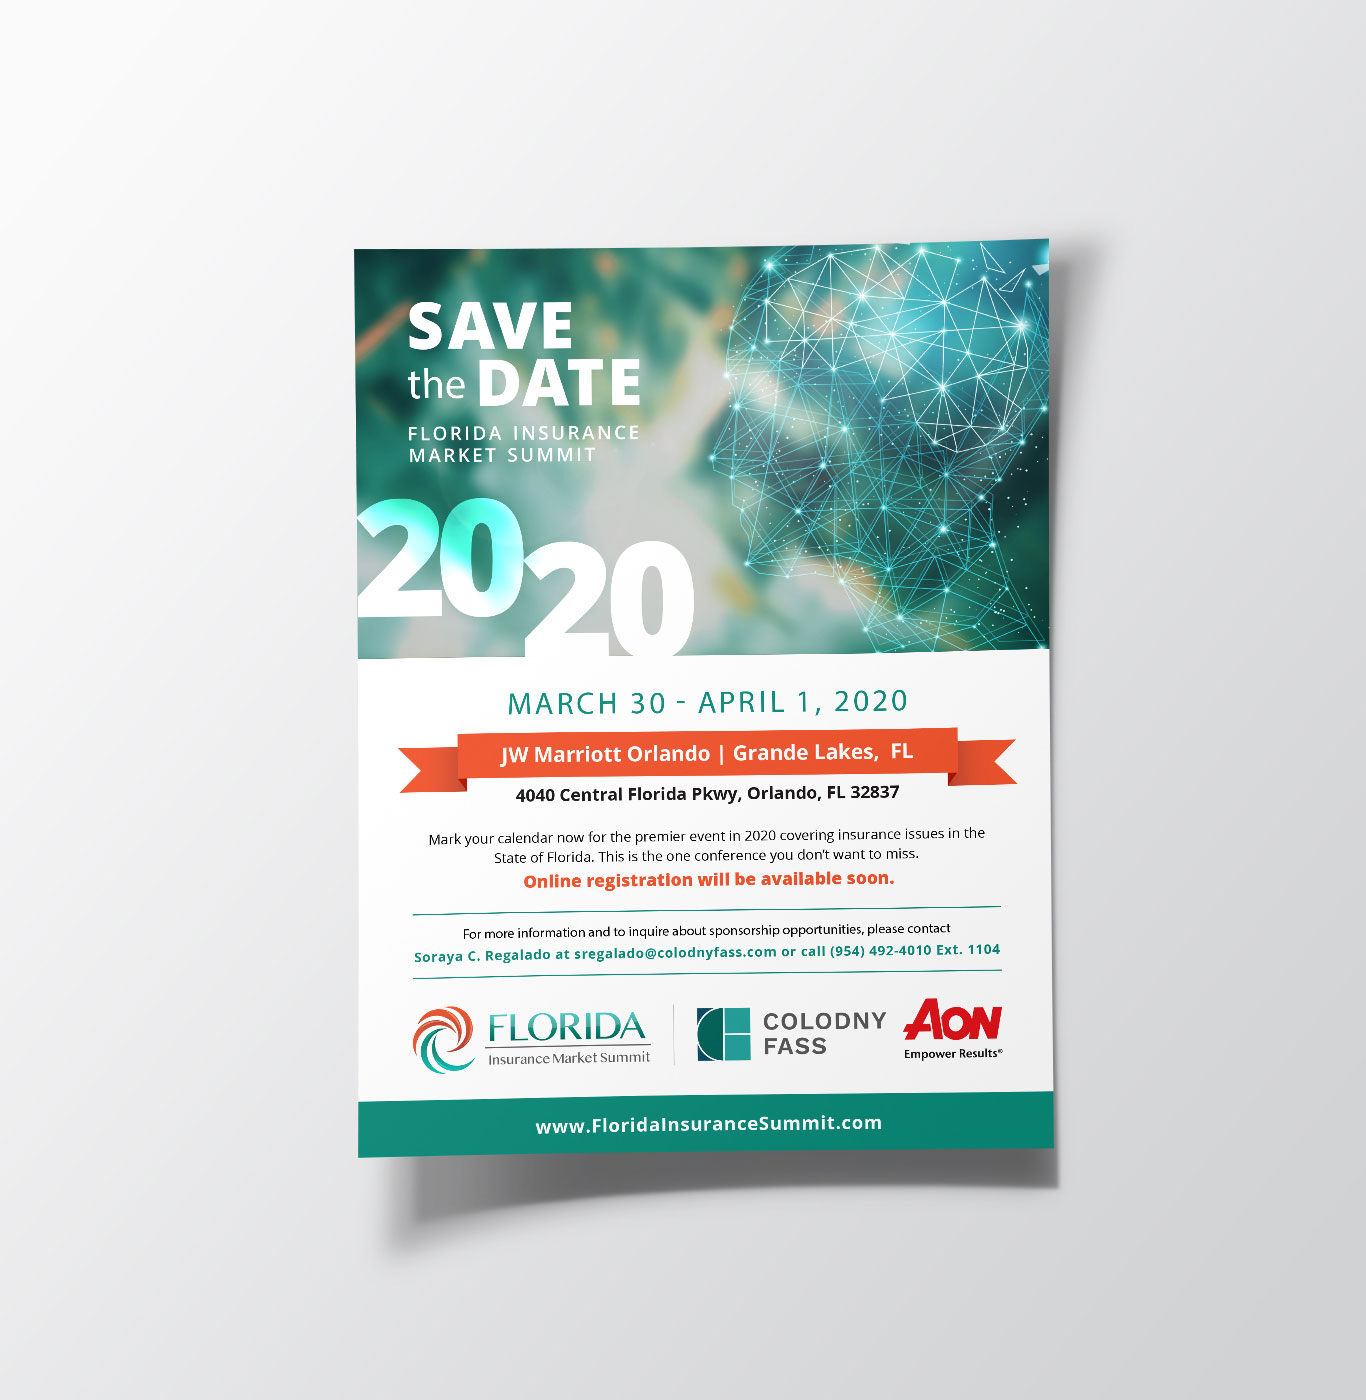 Save the Date flyer designed for the Florida Insurance Market Summit.